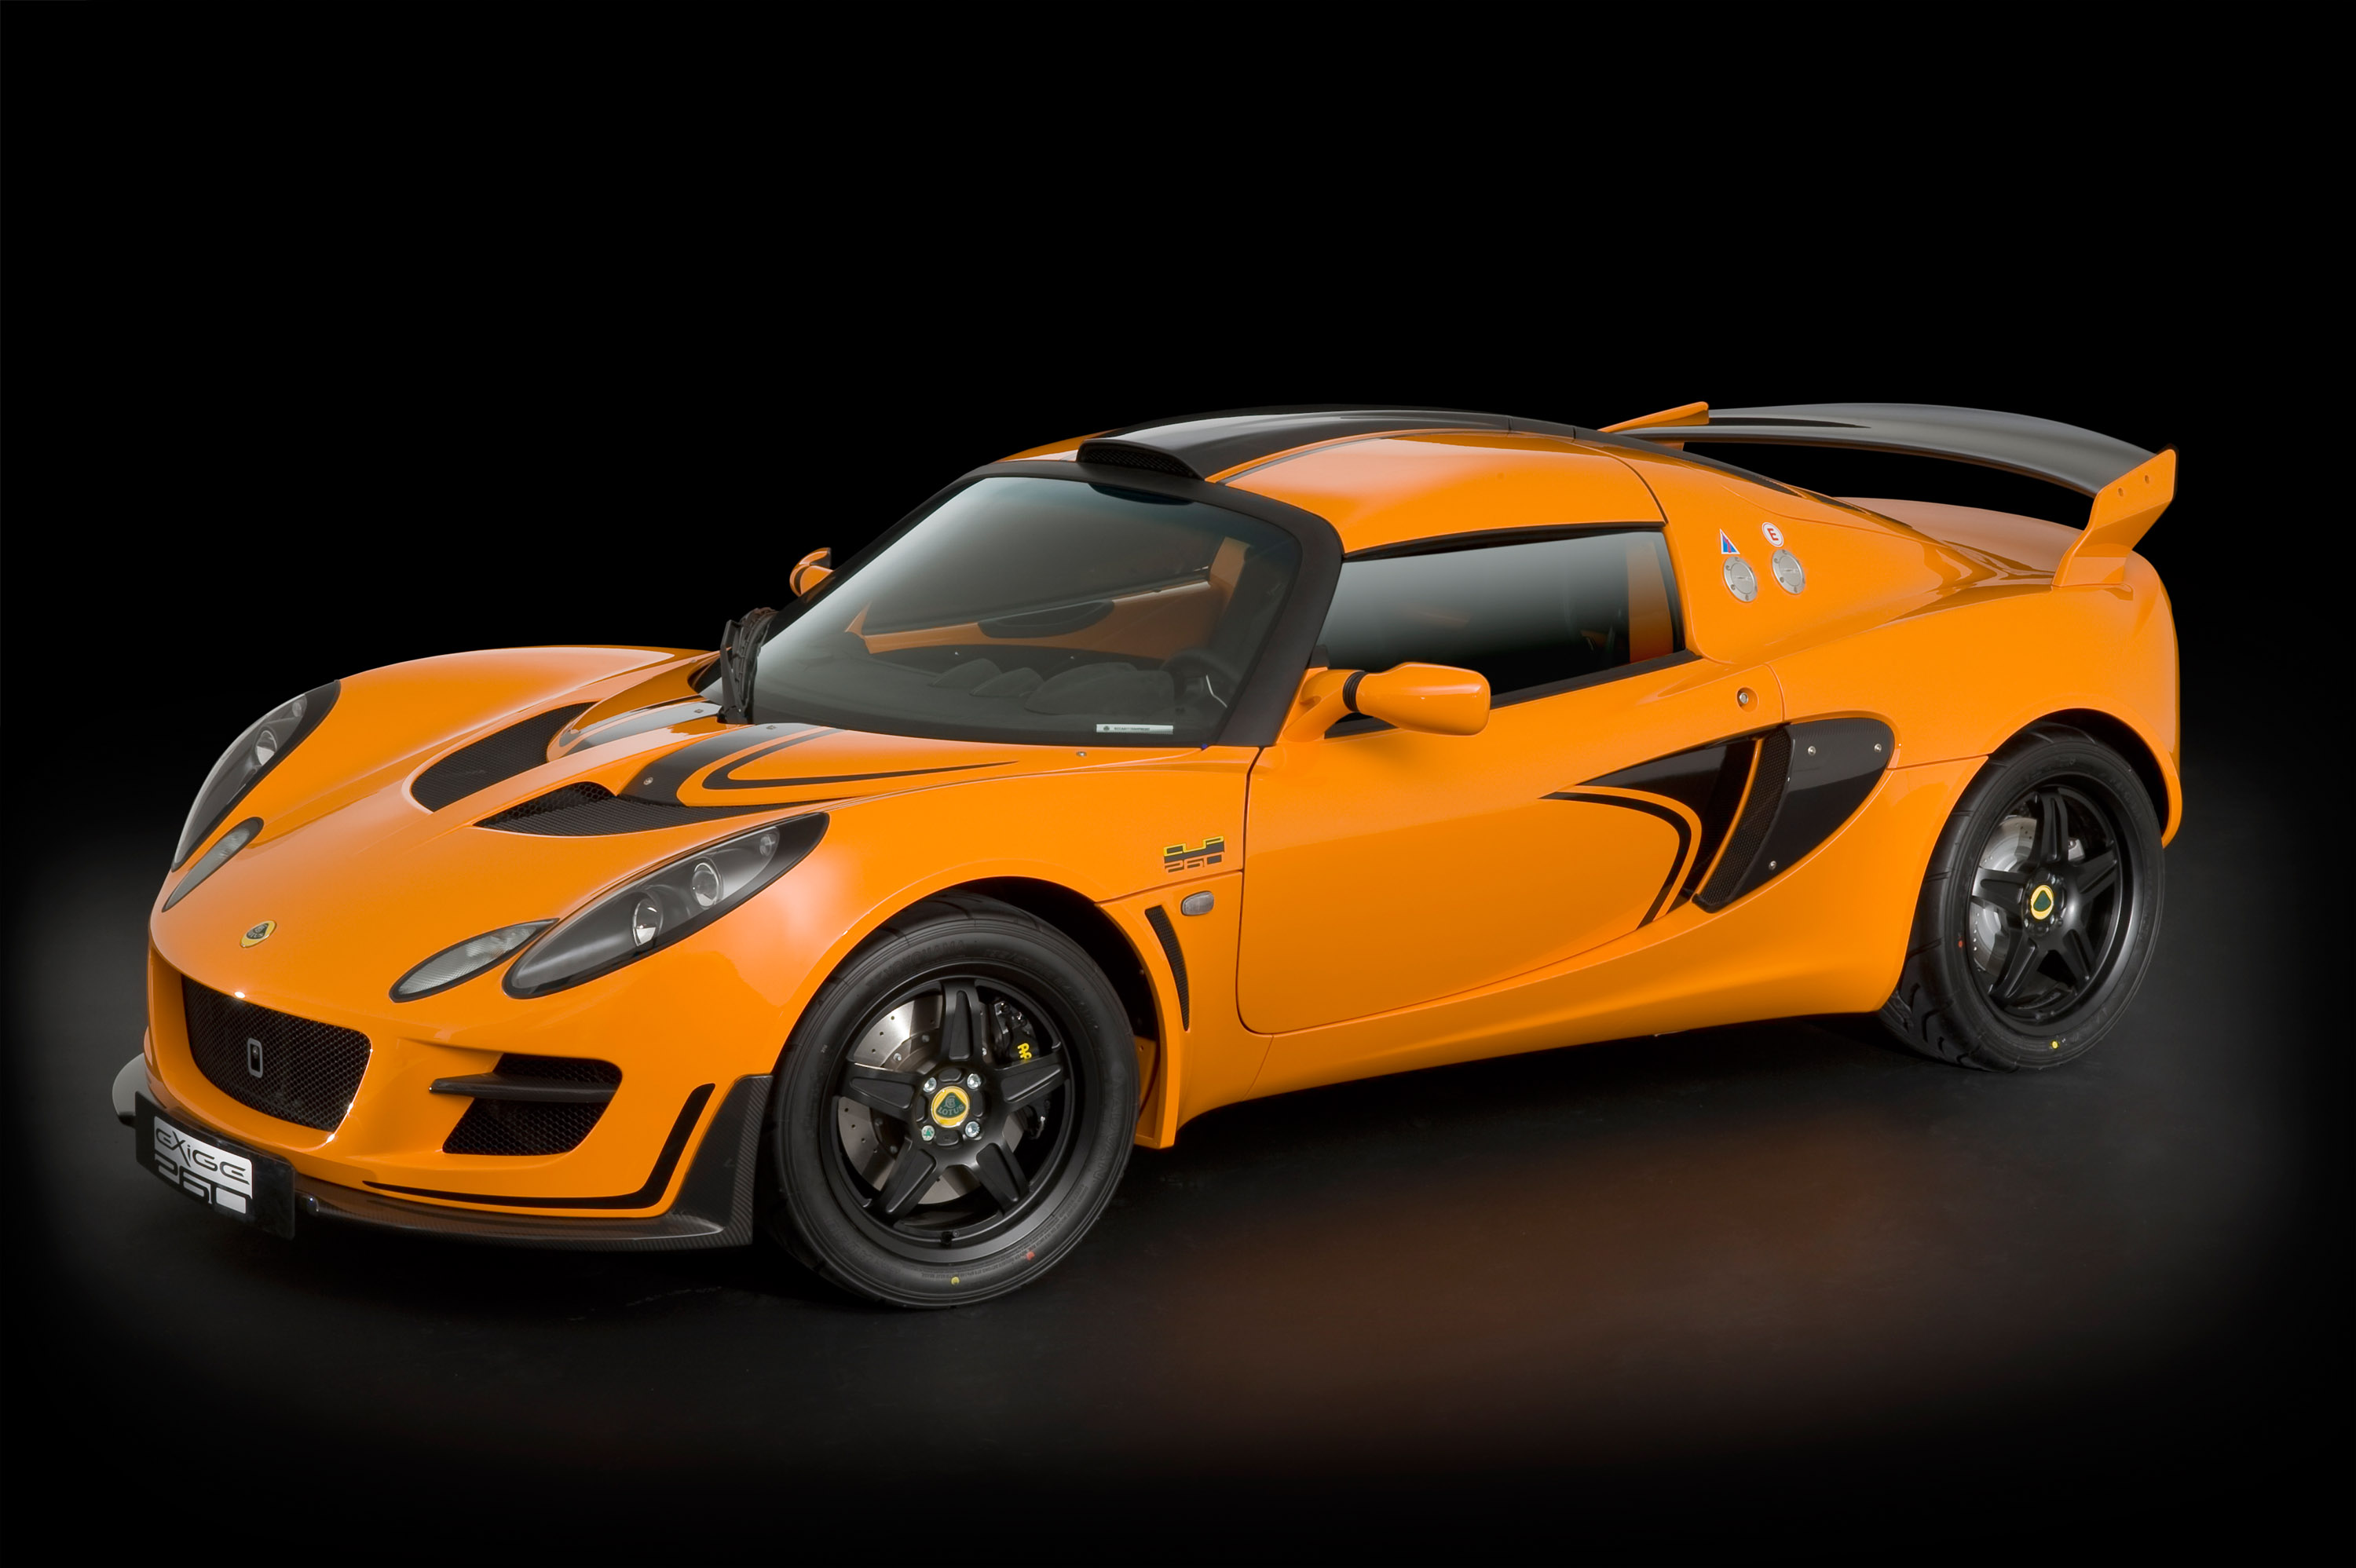 2010 lotus exige cup 260. Black Bedroom Furniture Sets. Home Design Ideas